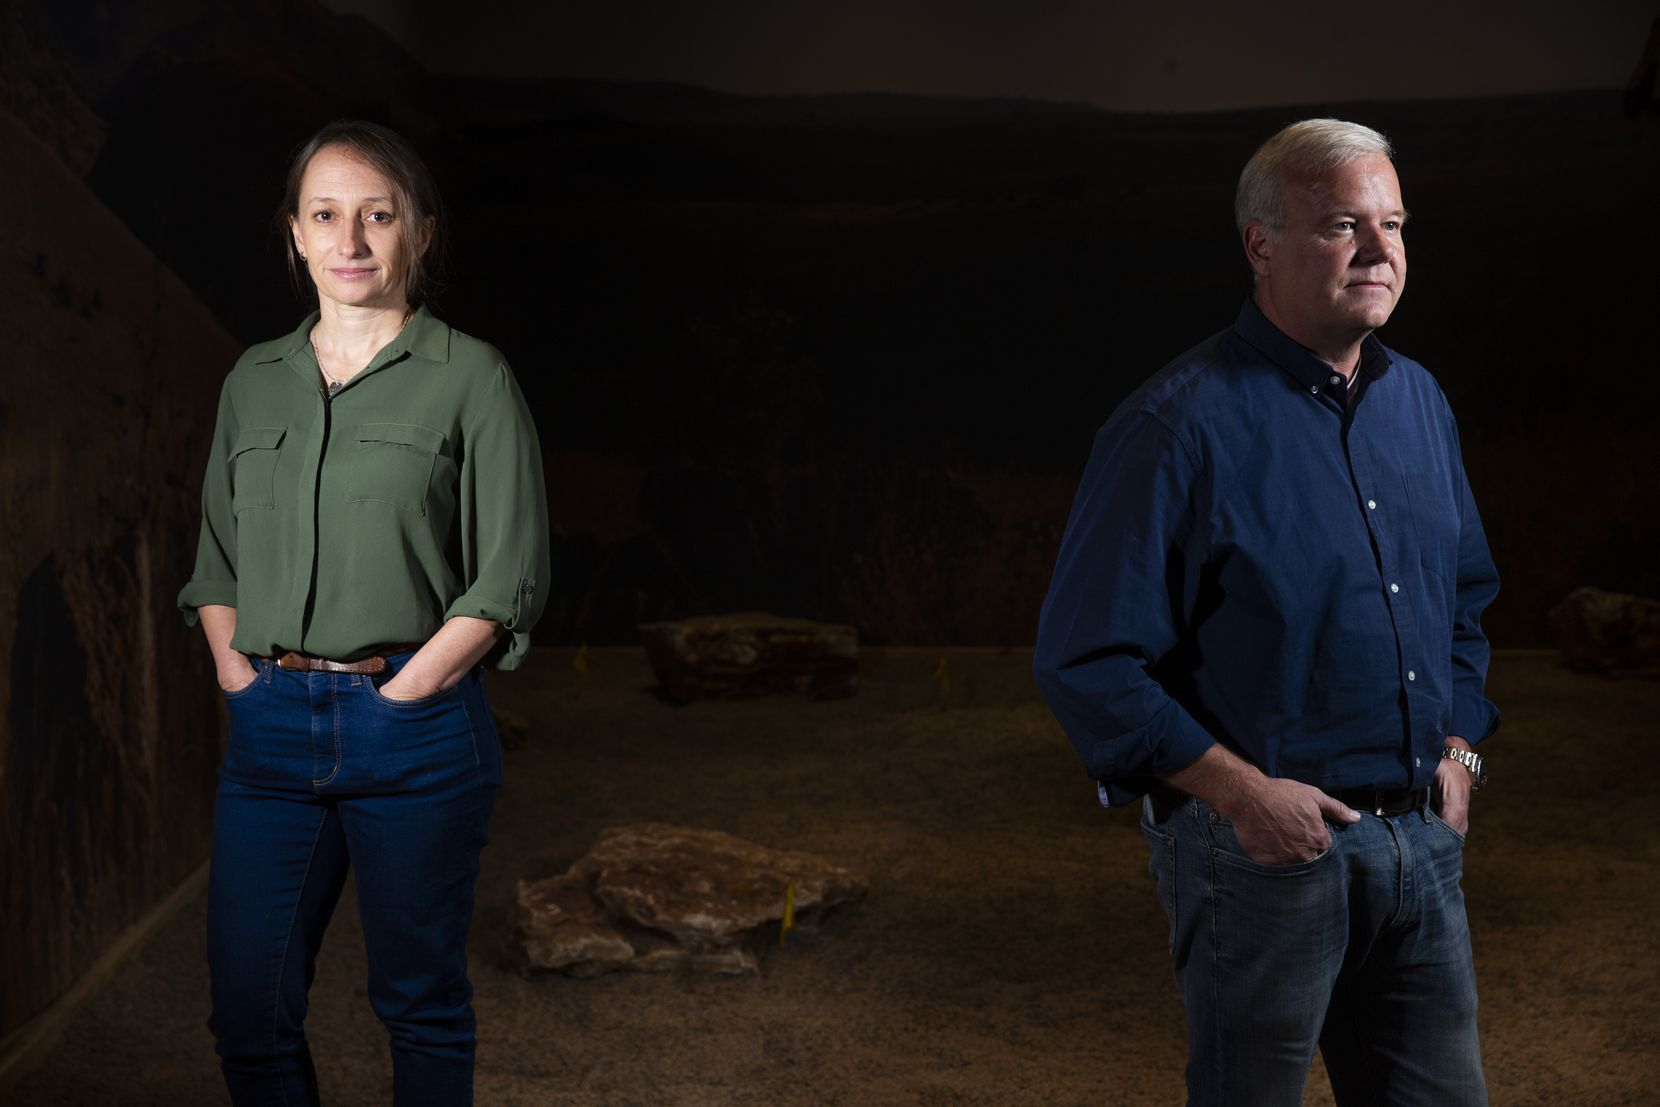 Becca Peixotto, director for the Center of Exploration of the Human Journey at the Perot Museum of Nature and Science, with Lee Berger, a South Africa-based explorer and anthropologist, on Oct. 4, 2019, at the Perot Museum of Nature and Science in Dallas.